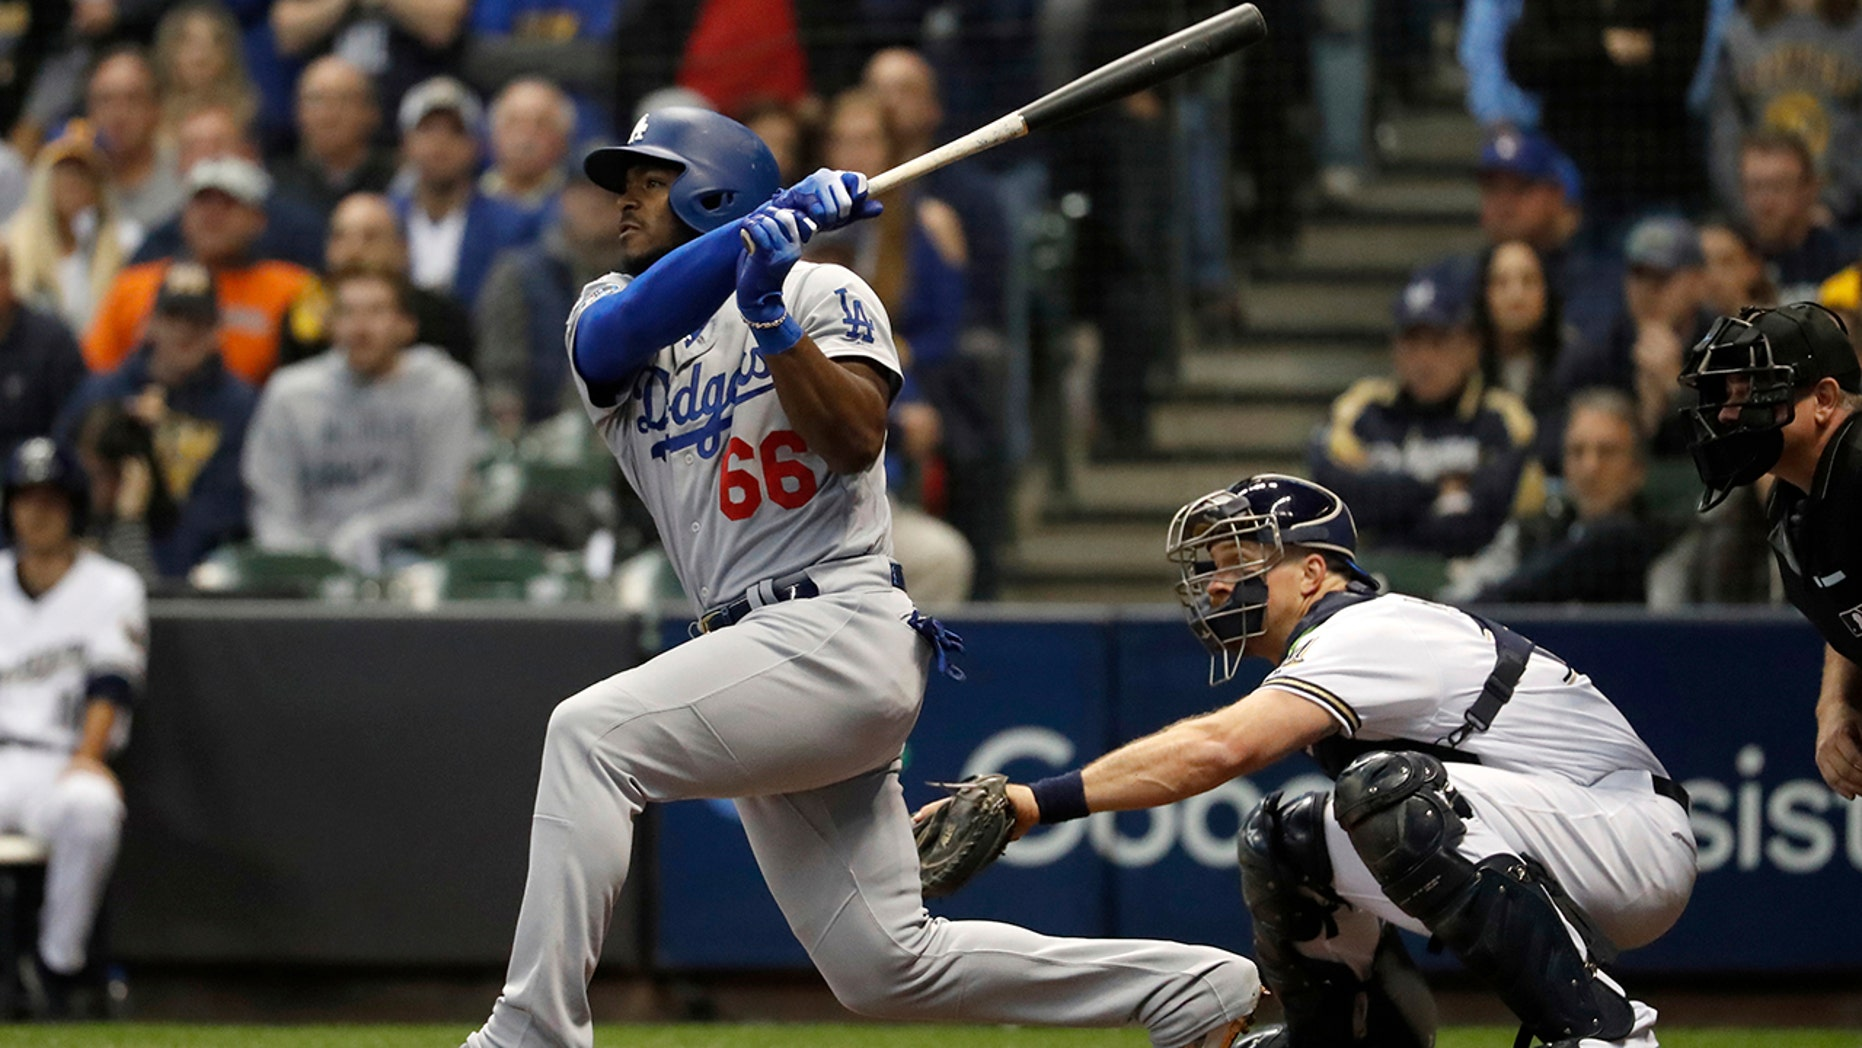 Los Angeles Dodgers' Yasiel Puig (66) hits a three-run home run during a sixth inning of Game 7 of a National League Championship Series round diversion opposite a Milwaukee Brewers Saturday, Oct. 20, 2018, in Milwaukee.